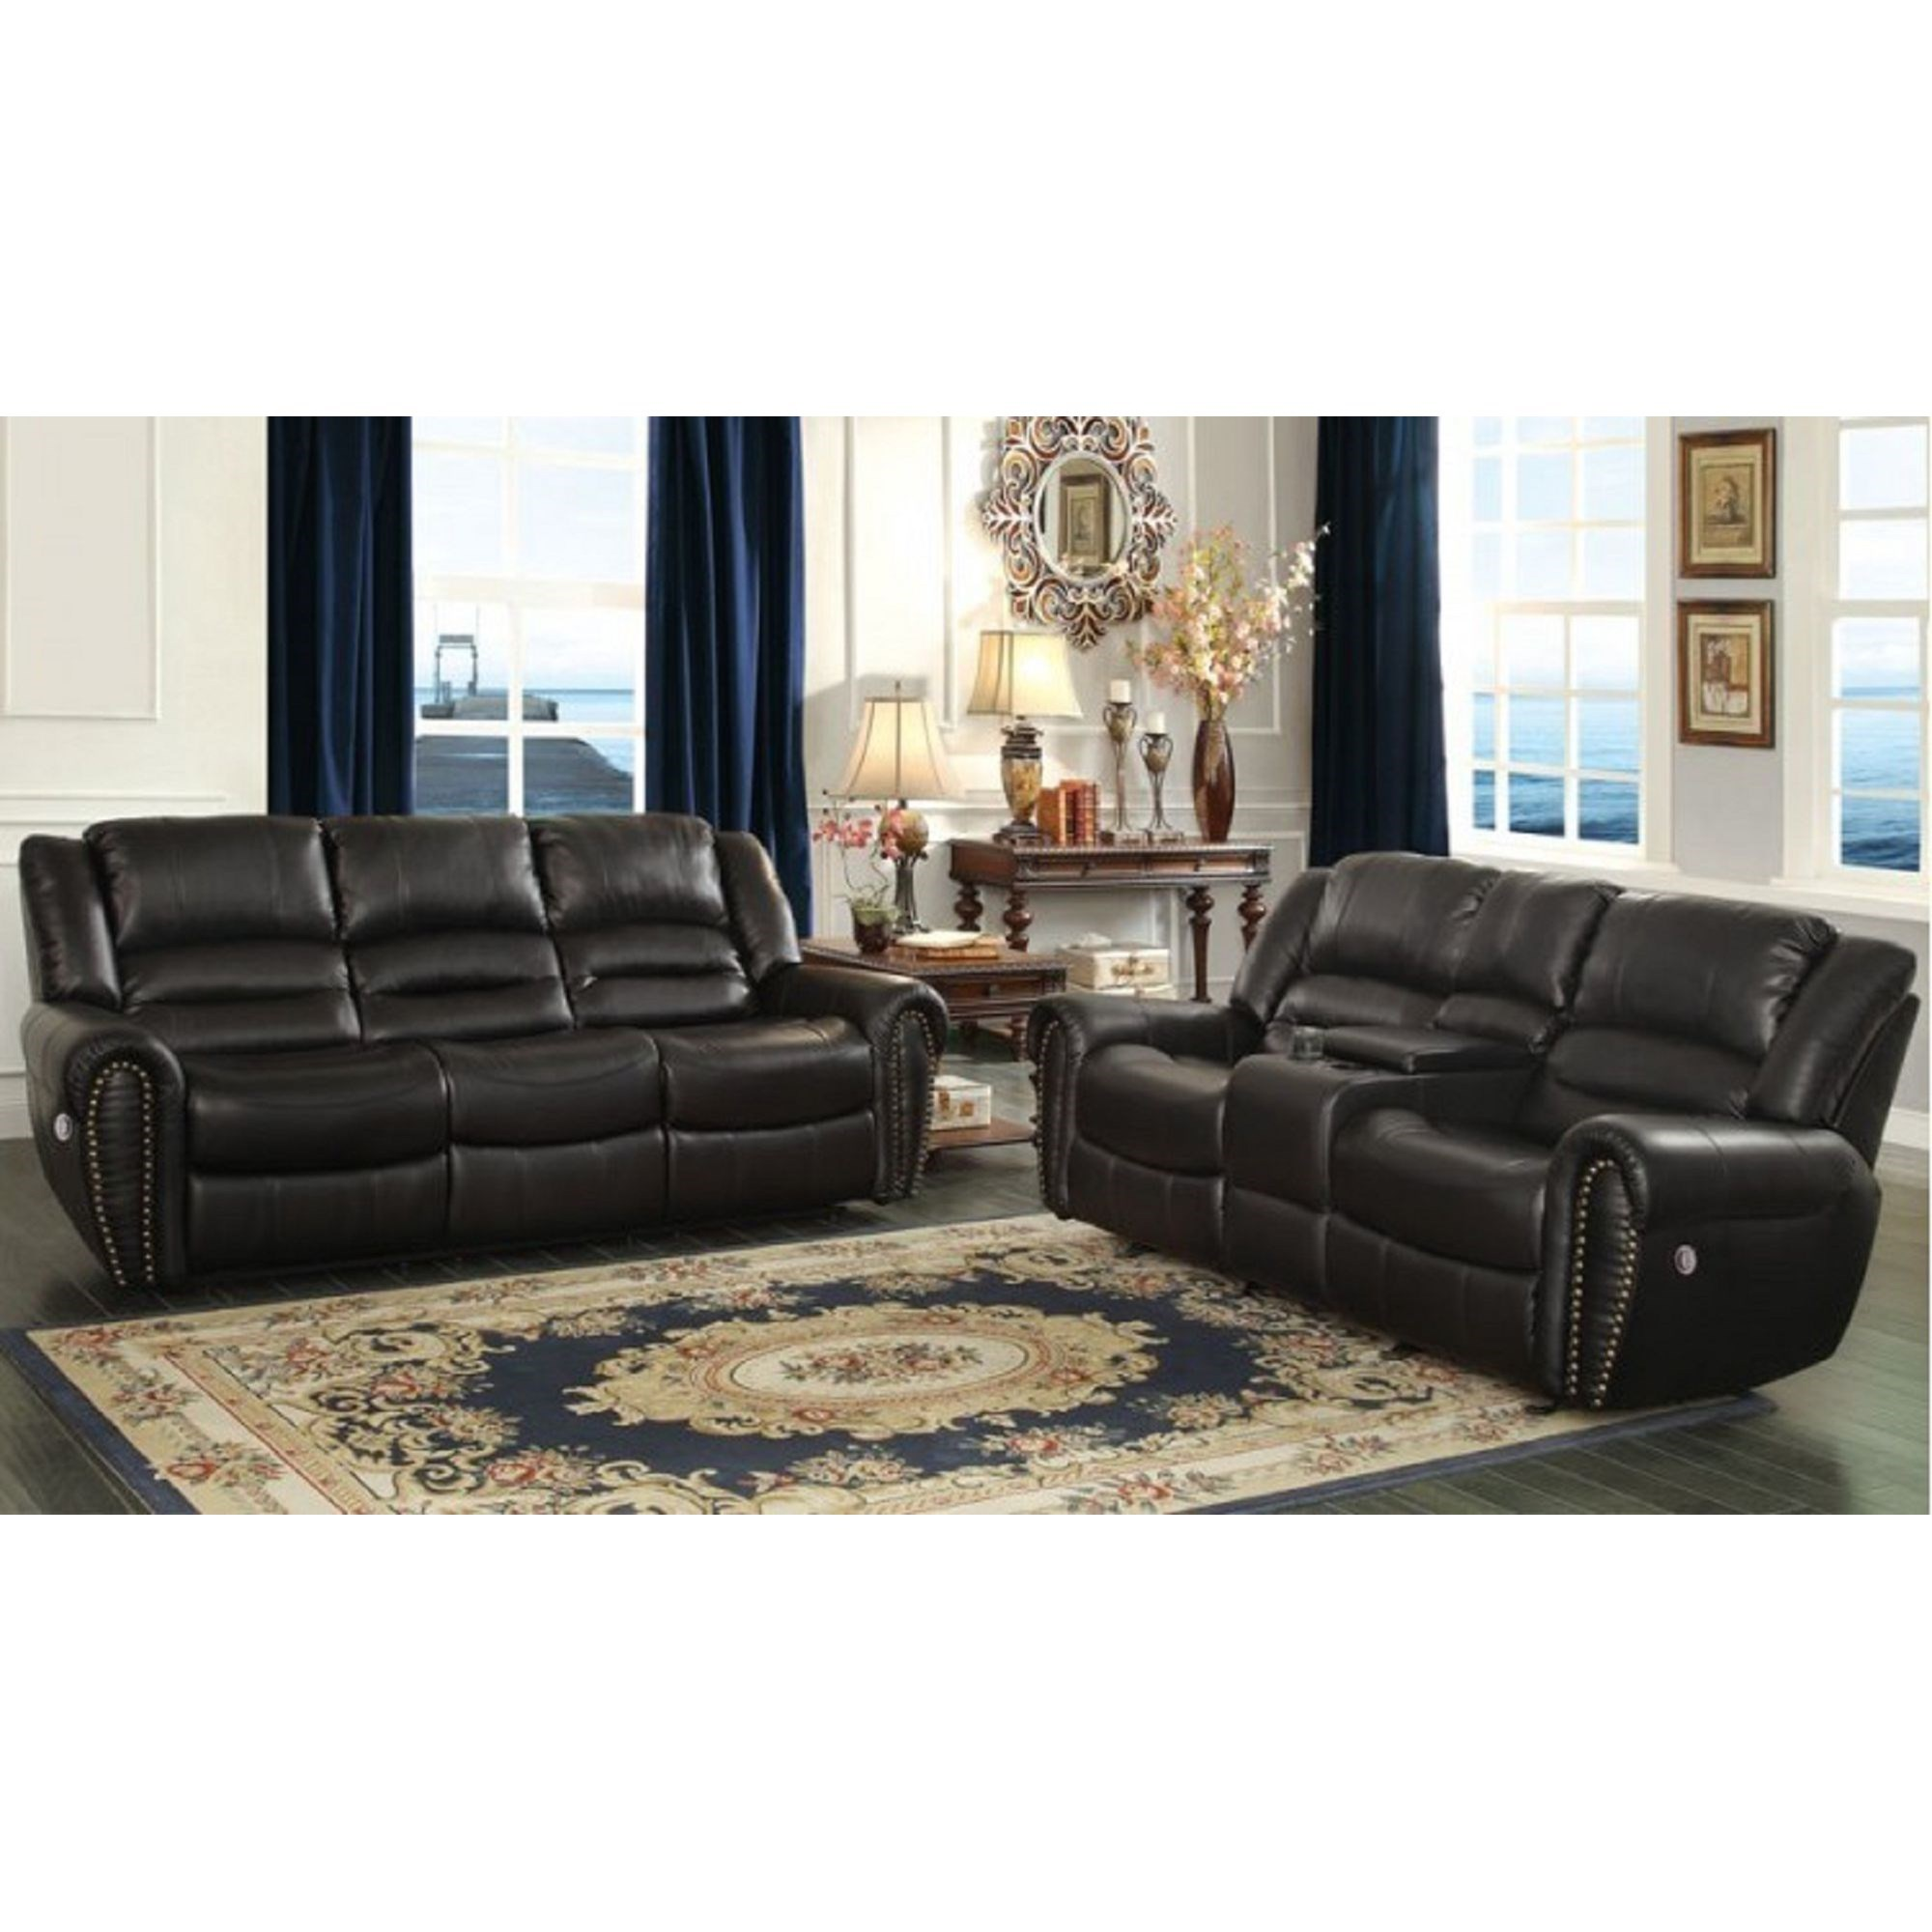 Homelegance center hill traditional power reclining living for Living room furniture groups